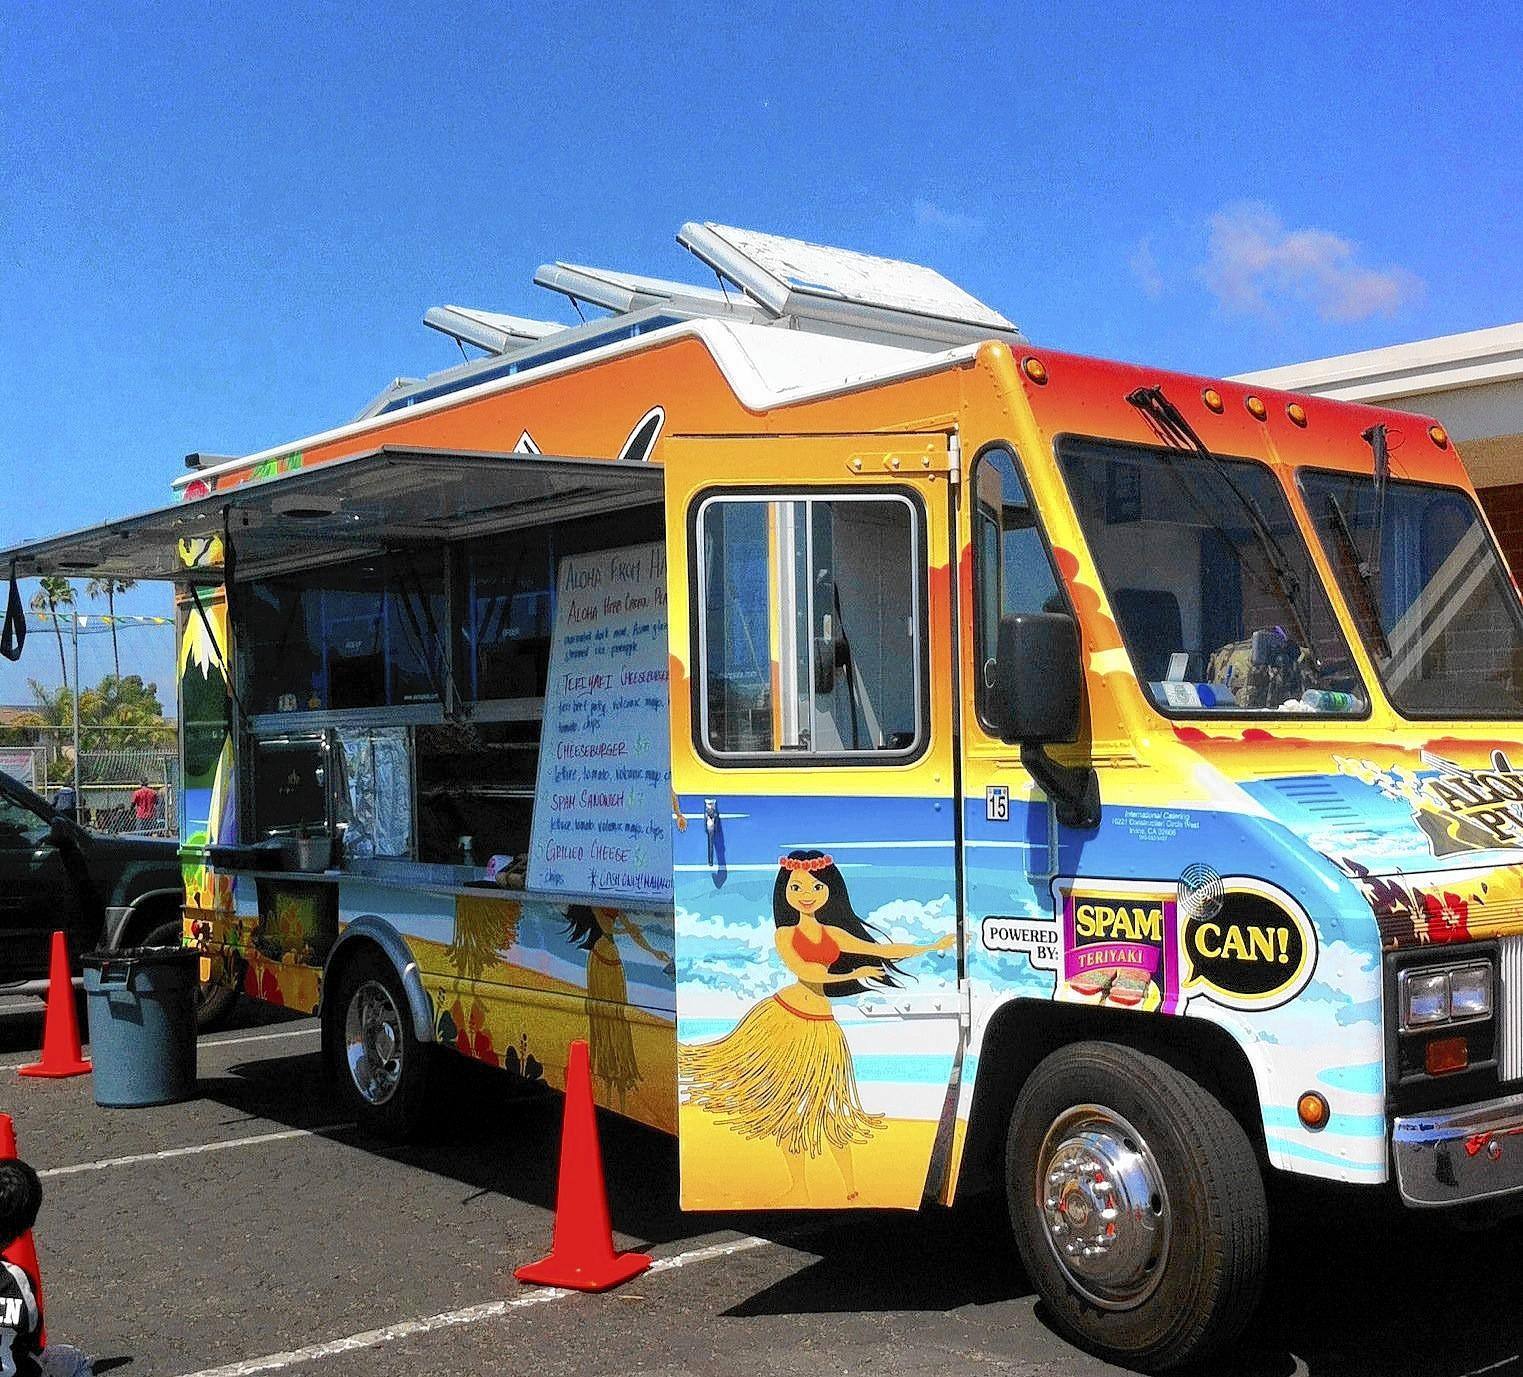 The competition-winning Aloha Plate food truck at Seaview Little League.